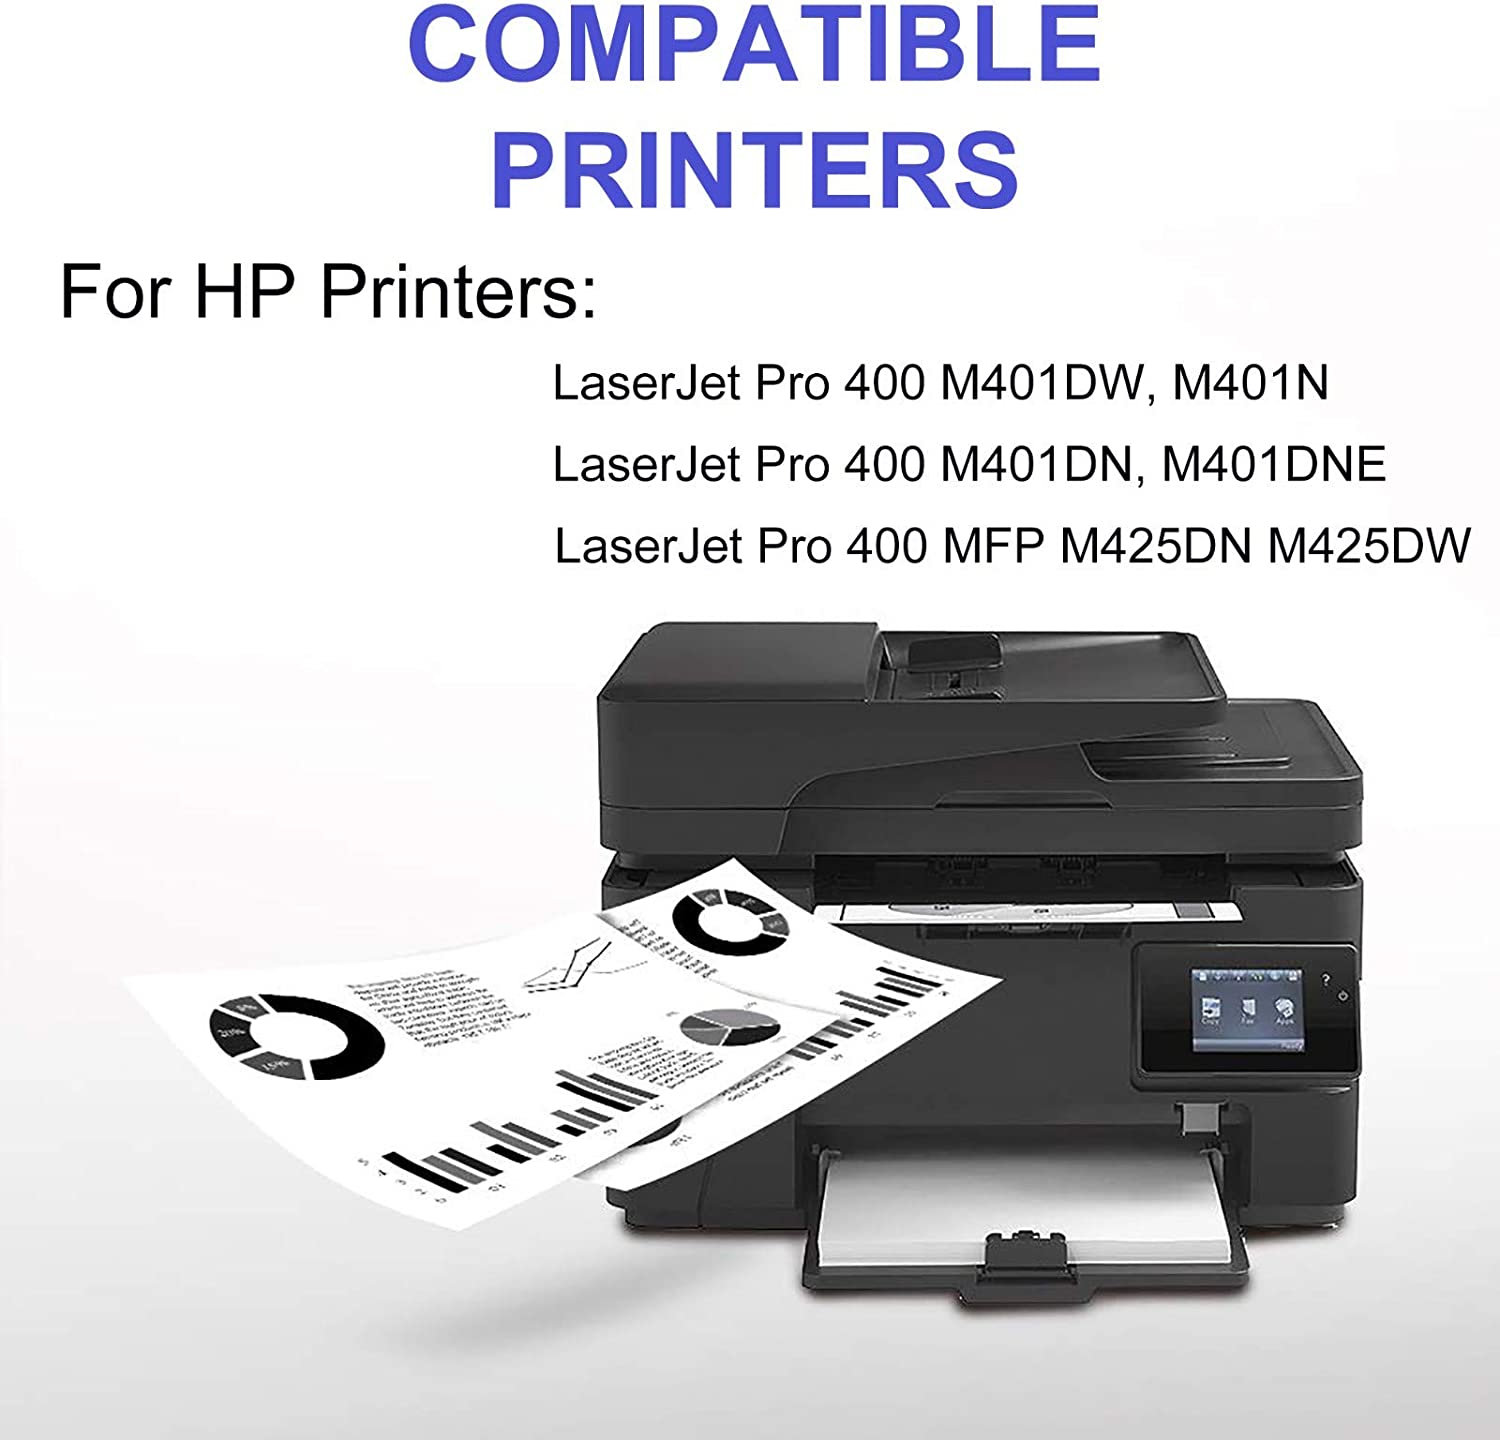 MFP M425DW Printer Cartridge Replacement for HP 80A Compatible High Capacity Laserjet Pro 400 MFP M425DN CF280A 6-Pack Black Toner Cartridge Print True-to-Life Photos